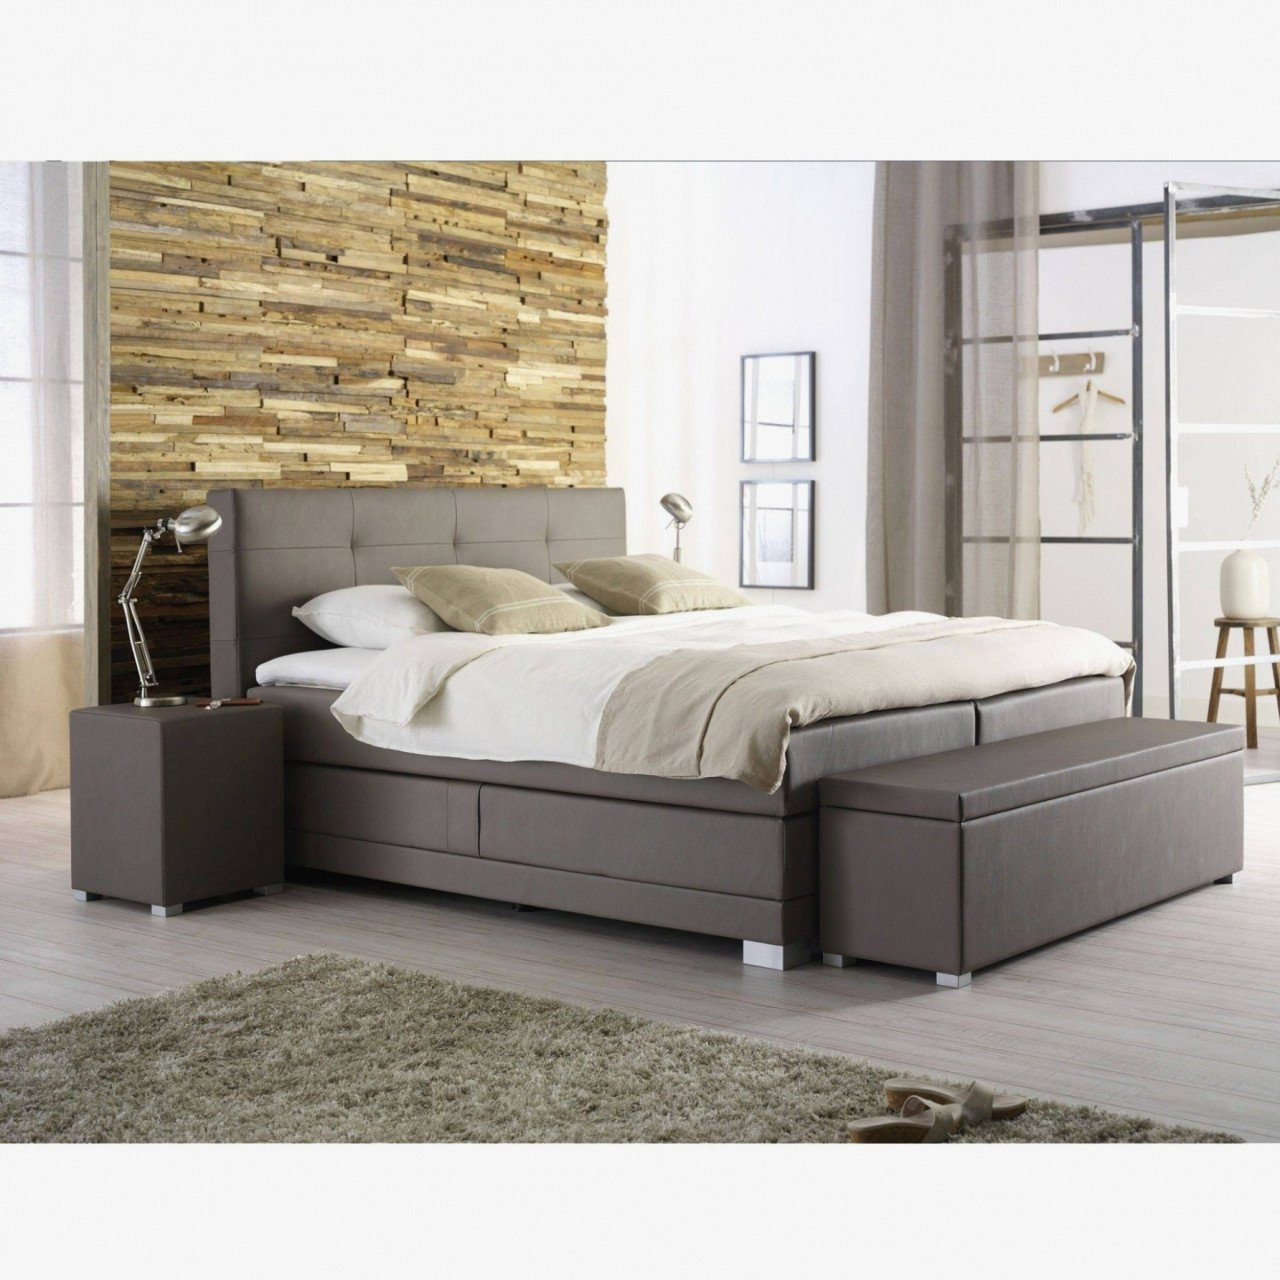 Queen Size Bedroom Suit Awesome Drawers Under Bed — Procura Home Blog